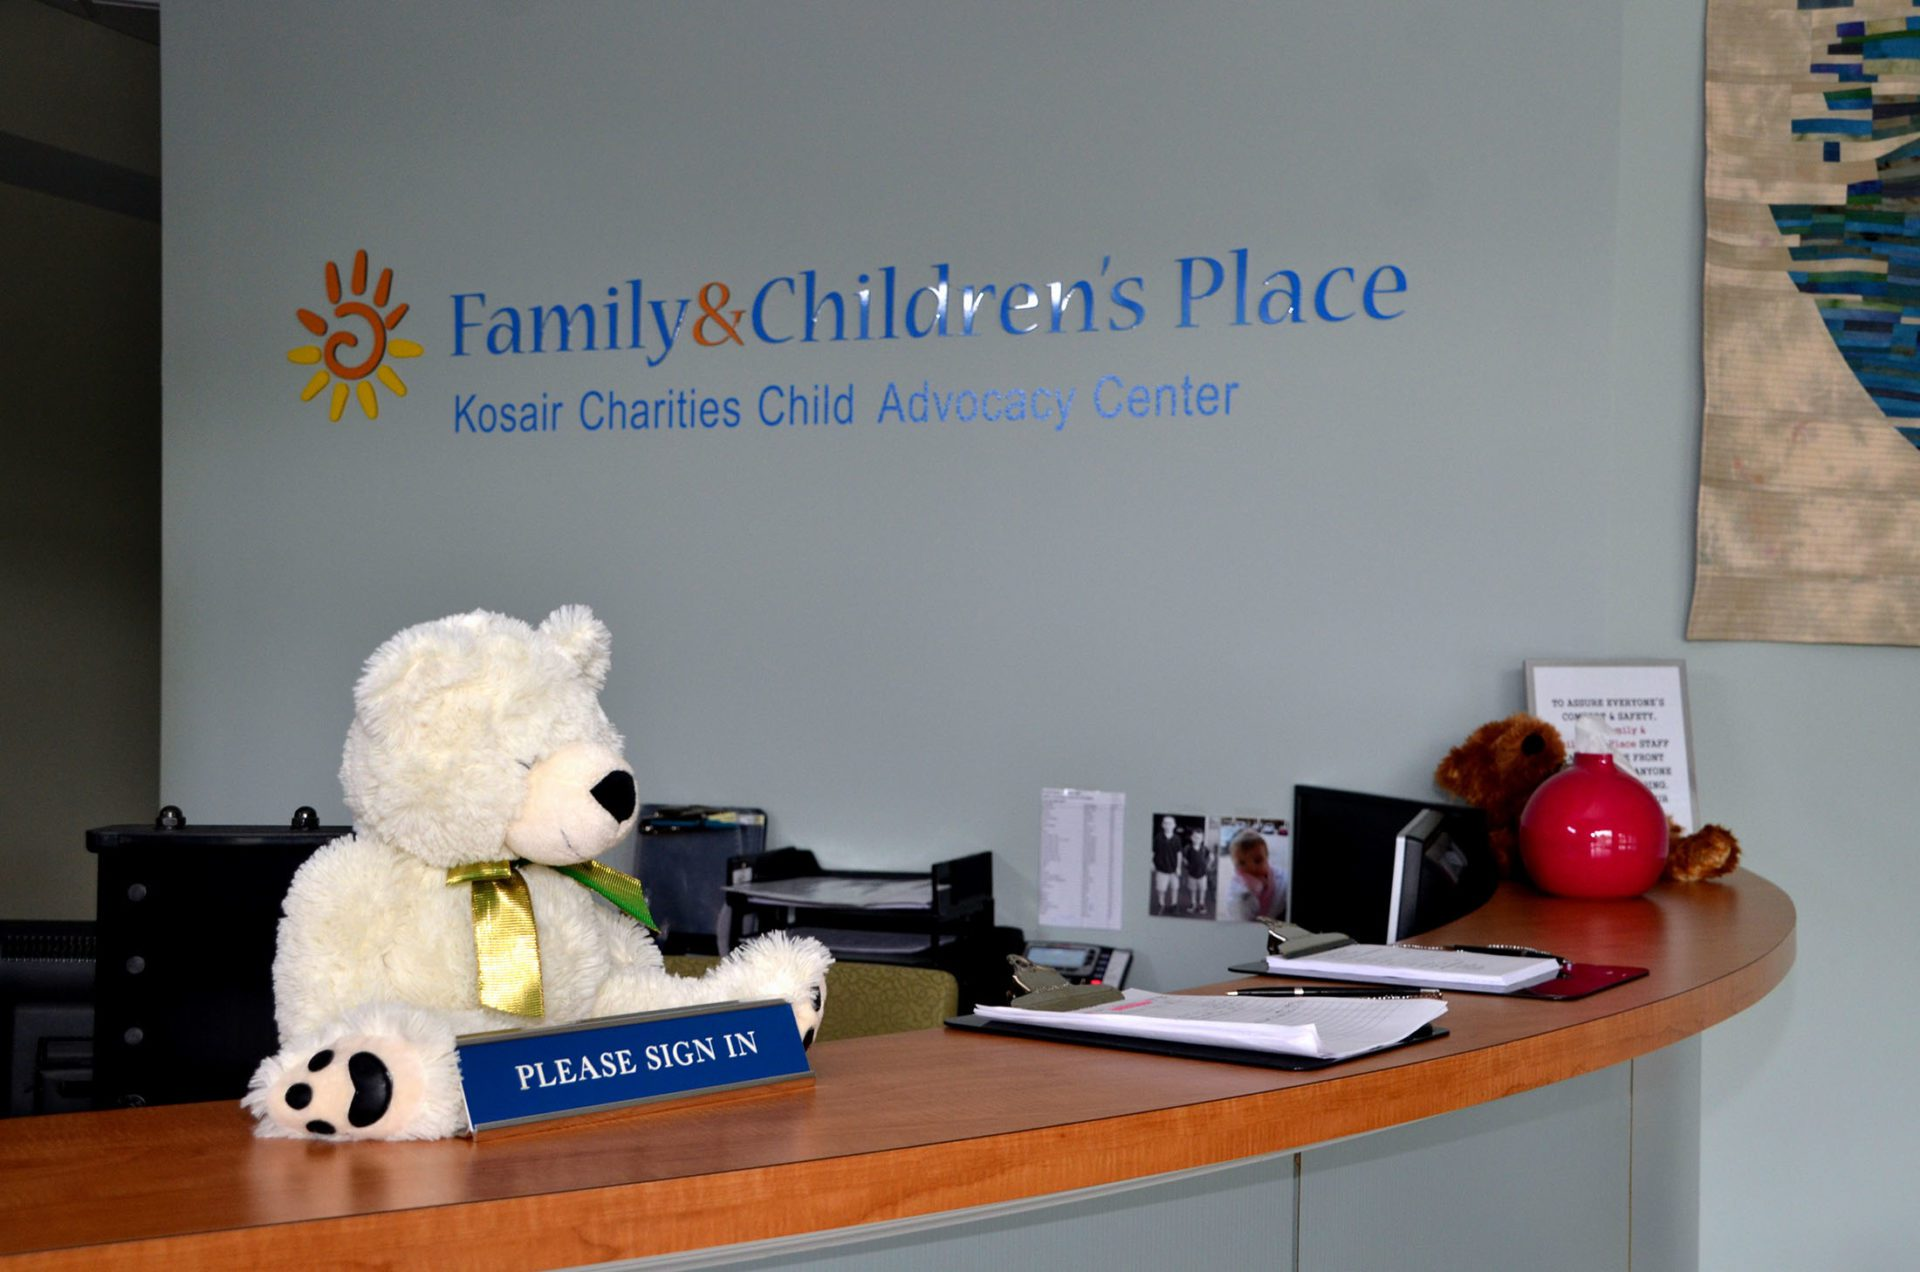 Family & Childrens Place front desk with bear